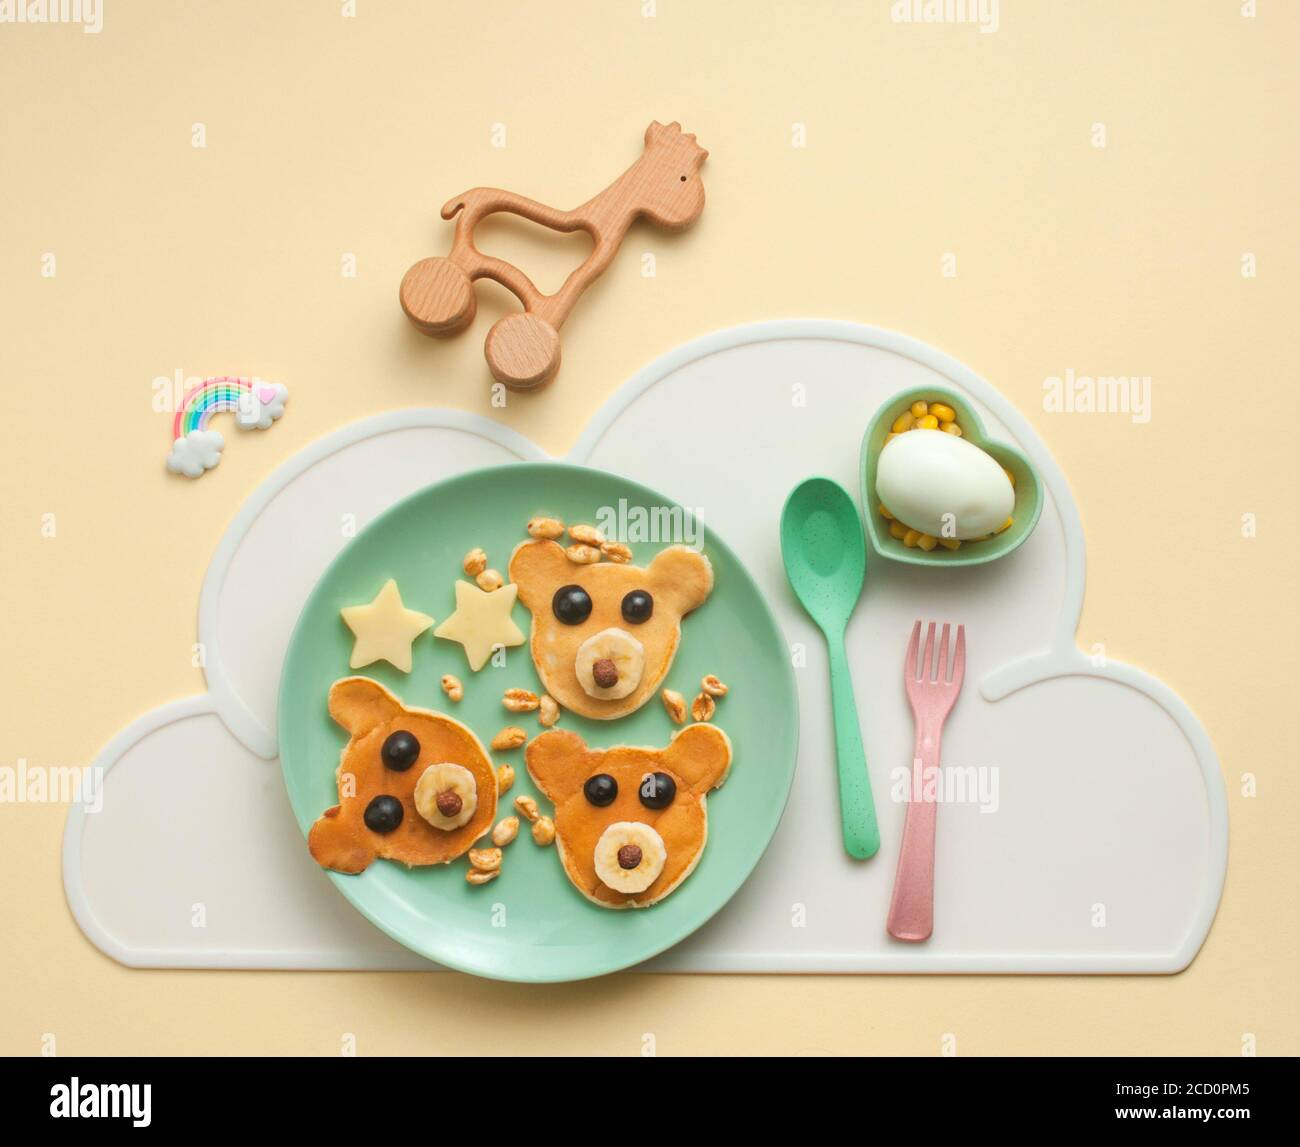 Top view of kid's breakfast. Green plate with funny pancakes on yellow background. Flat lay. Stock Photo